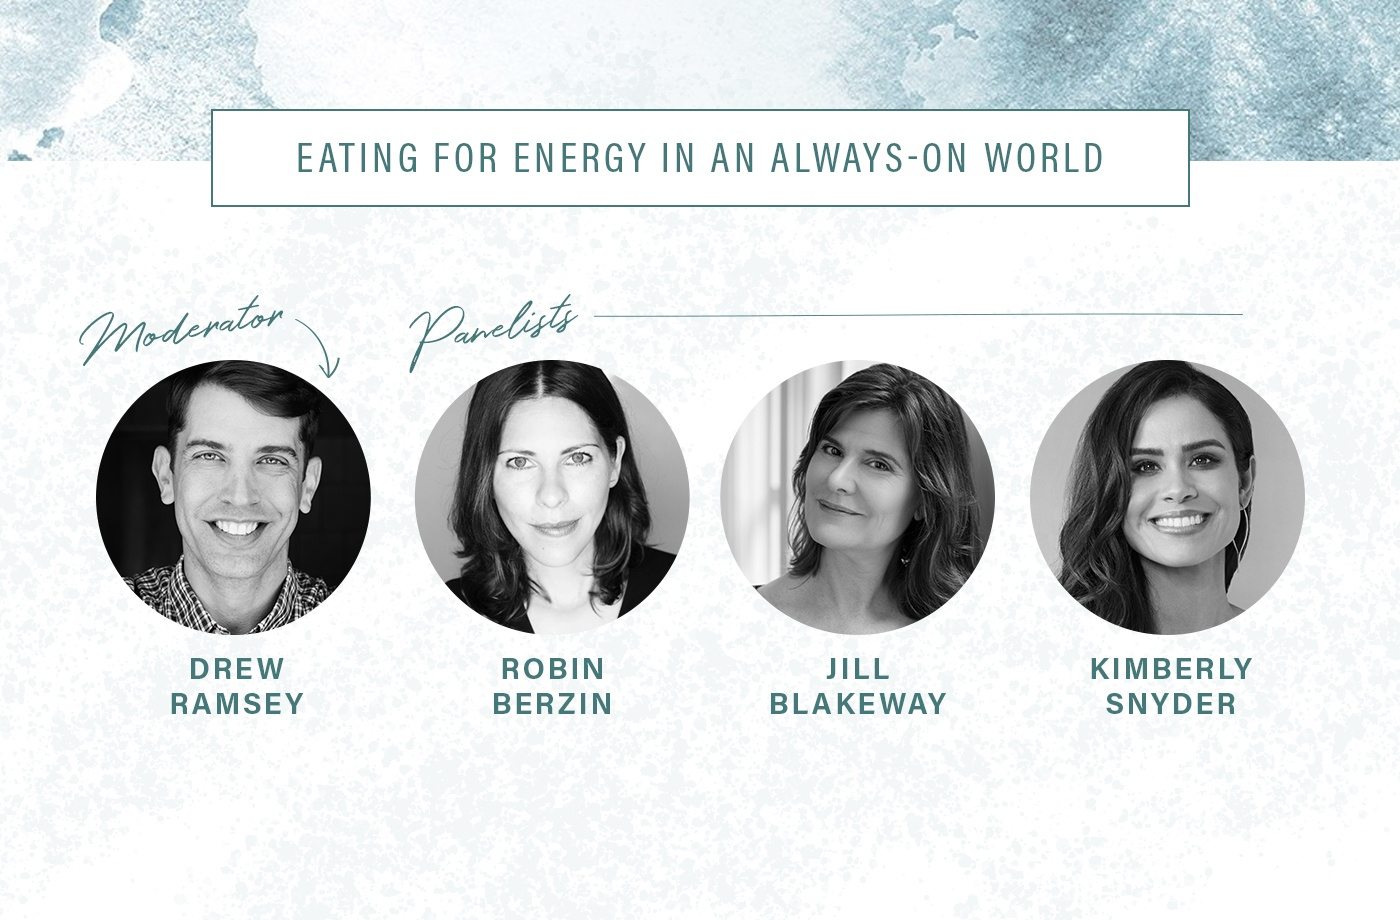 WG_Council_Event_Article_Collages-Eating-for-Energy.jpg